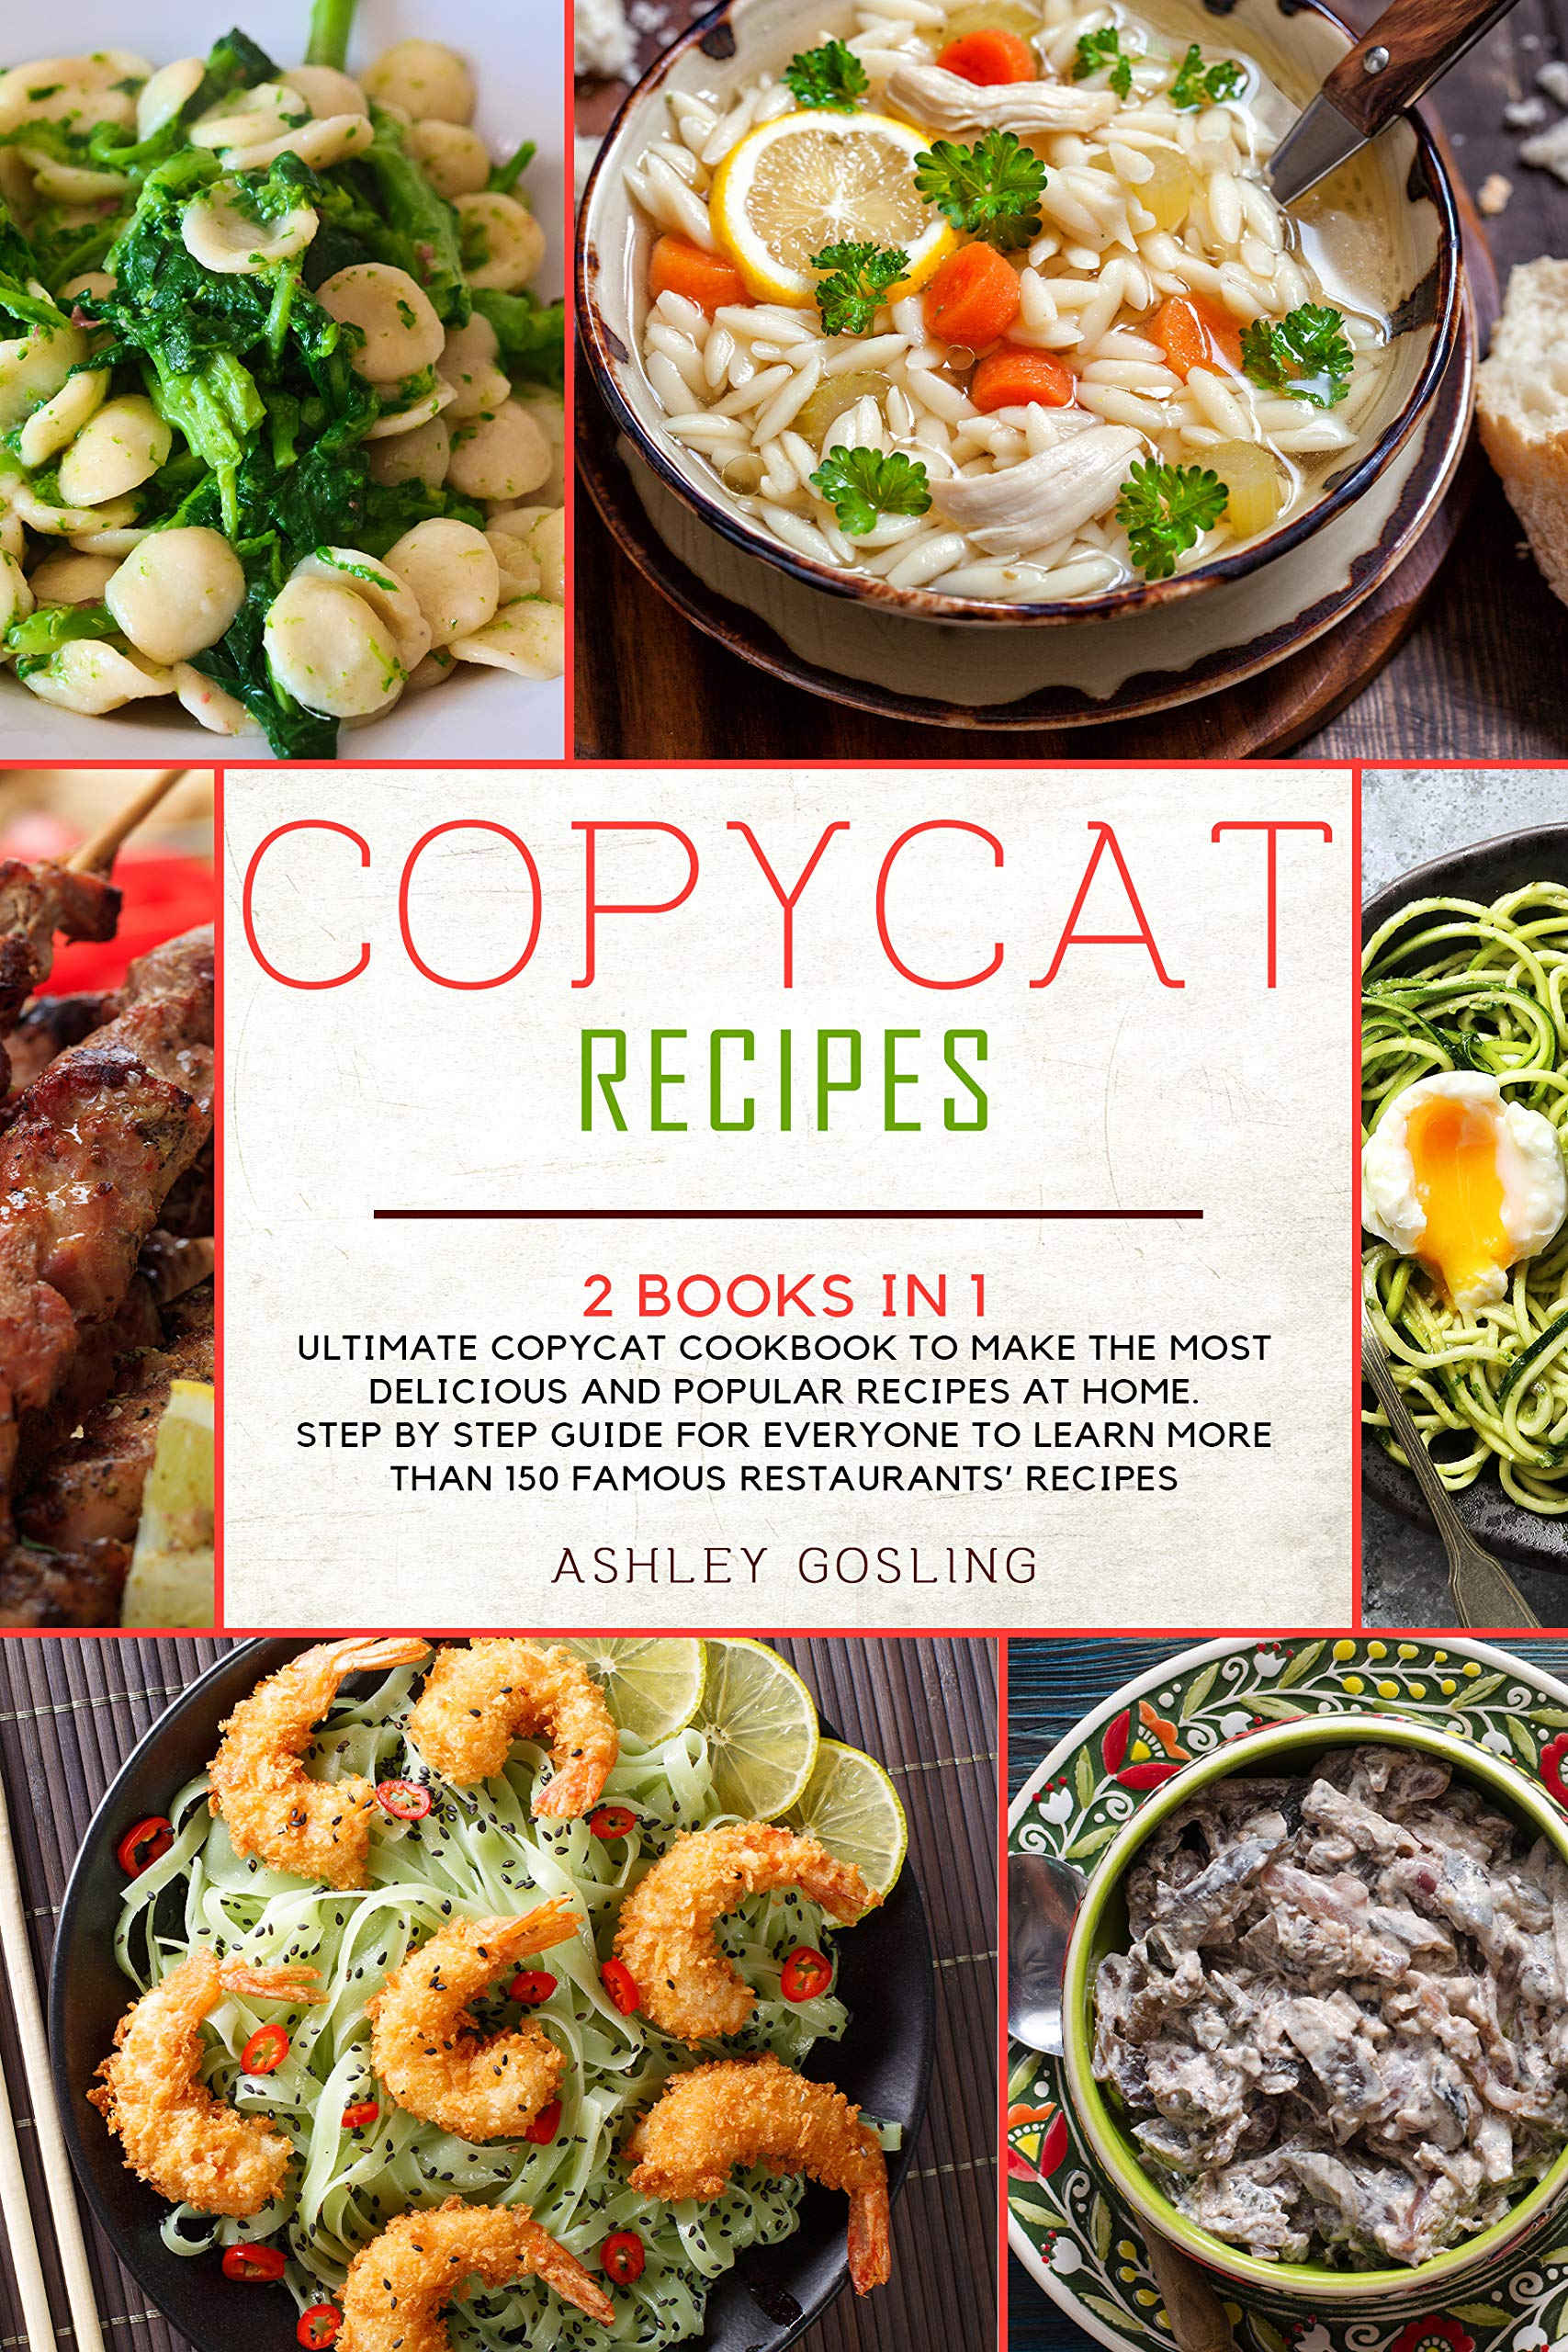 Copycat Recipes: 2 Books in 1 Ultimate Copycat Cookbook to Make the Most Delicious and Popular Recipes at Home. Step by Step Guide for Everyone to Learn More than 150 Famous Restaurants' Recipes